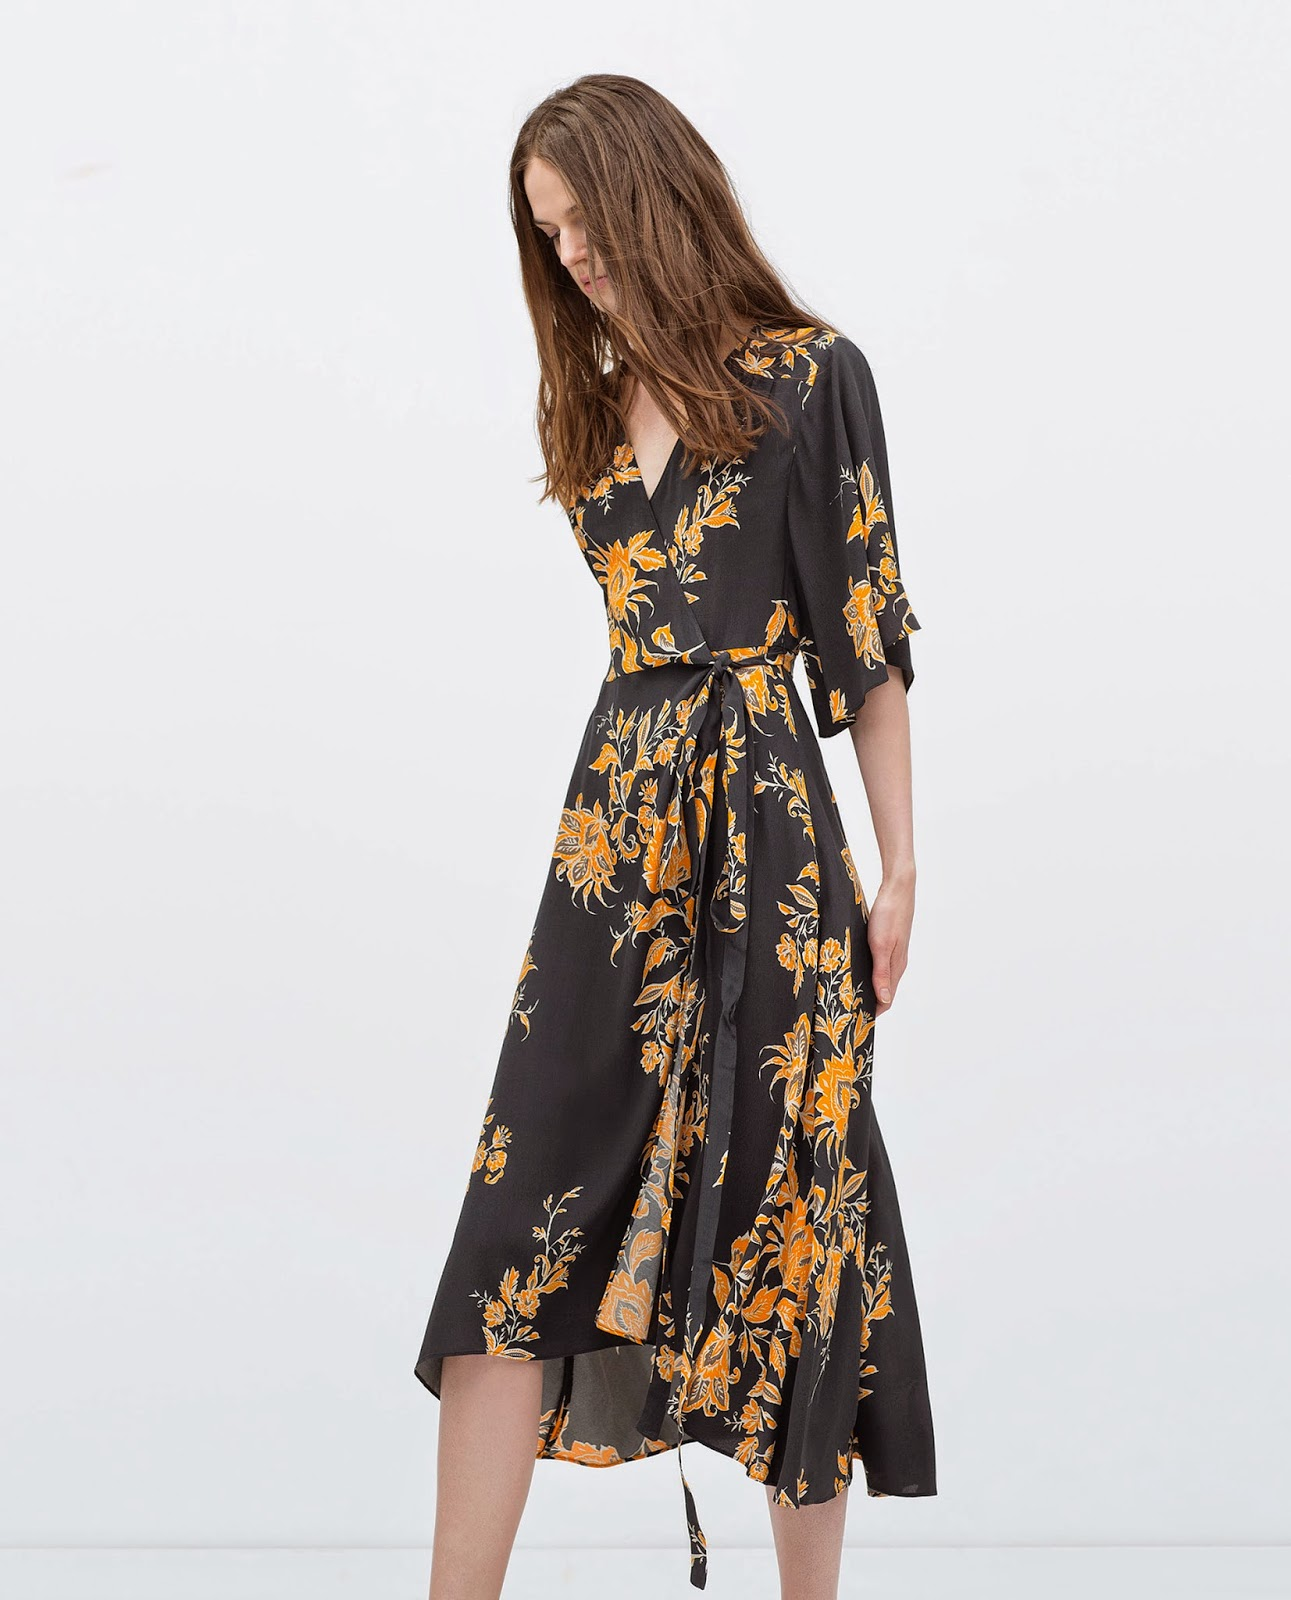 zara flower wrap dress,